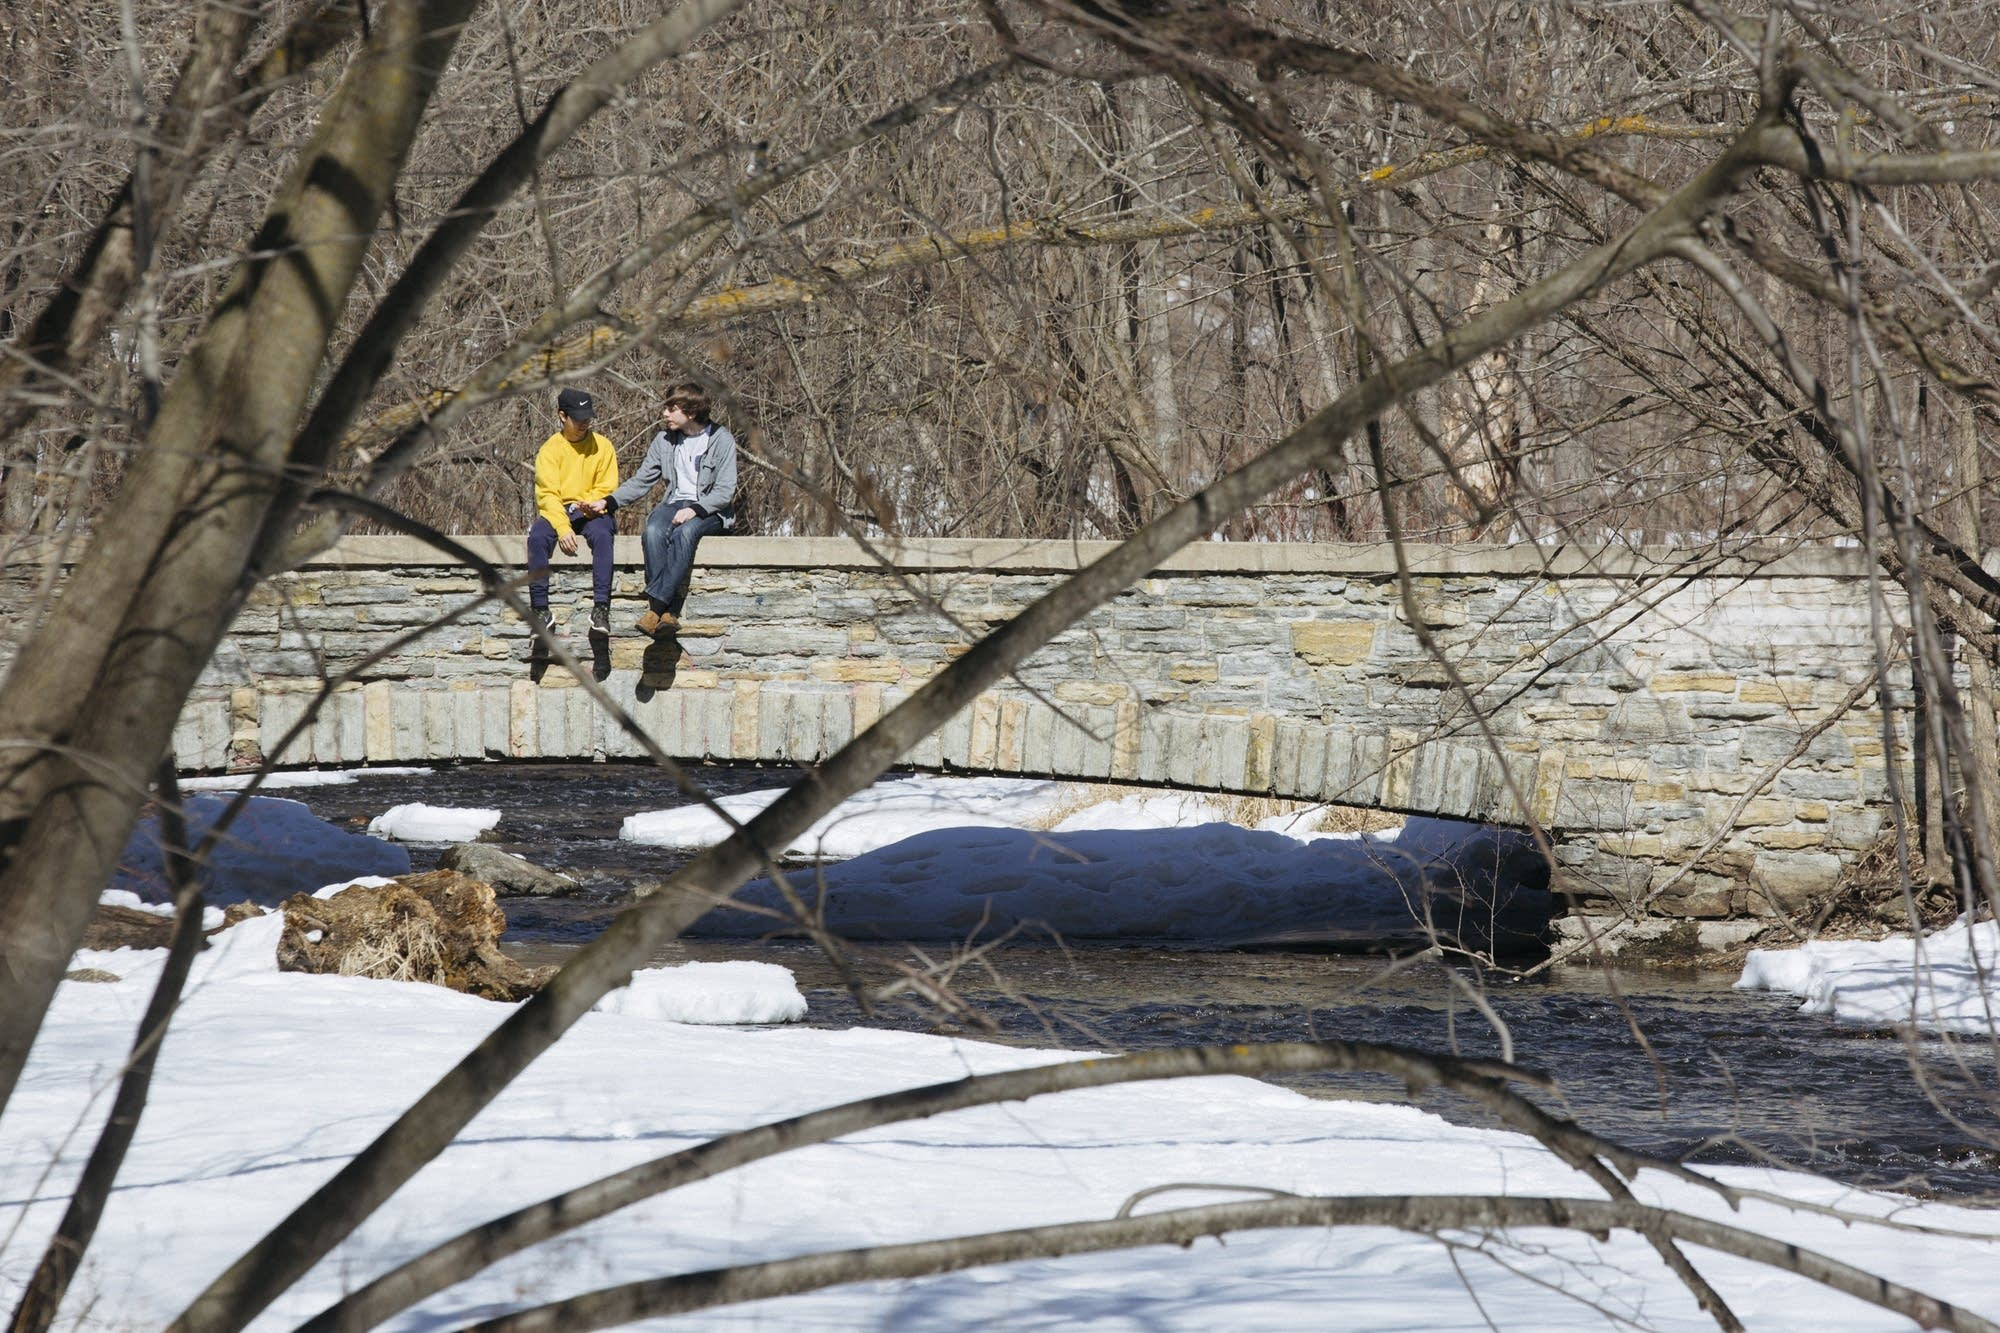 Two people share a moment on a bridge over Minnehaha Creek